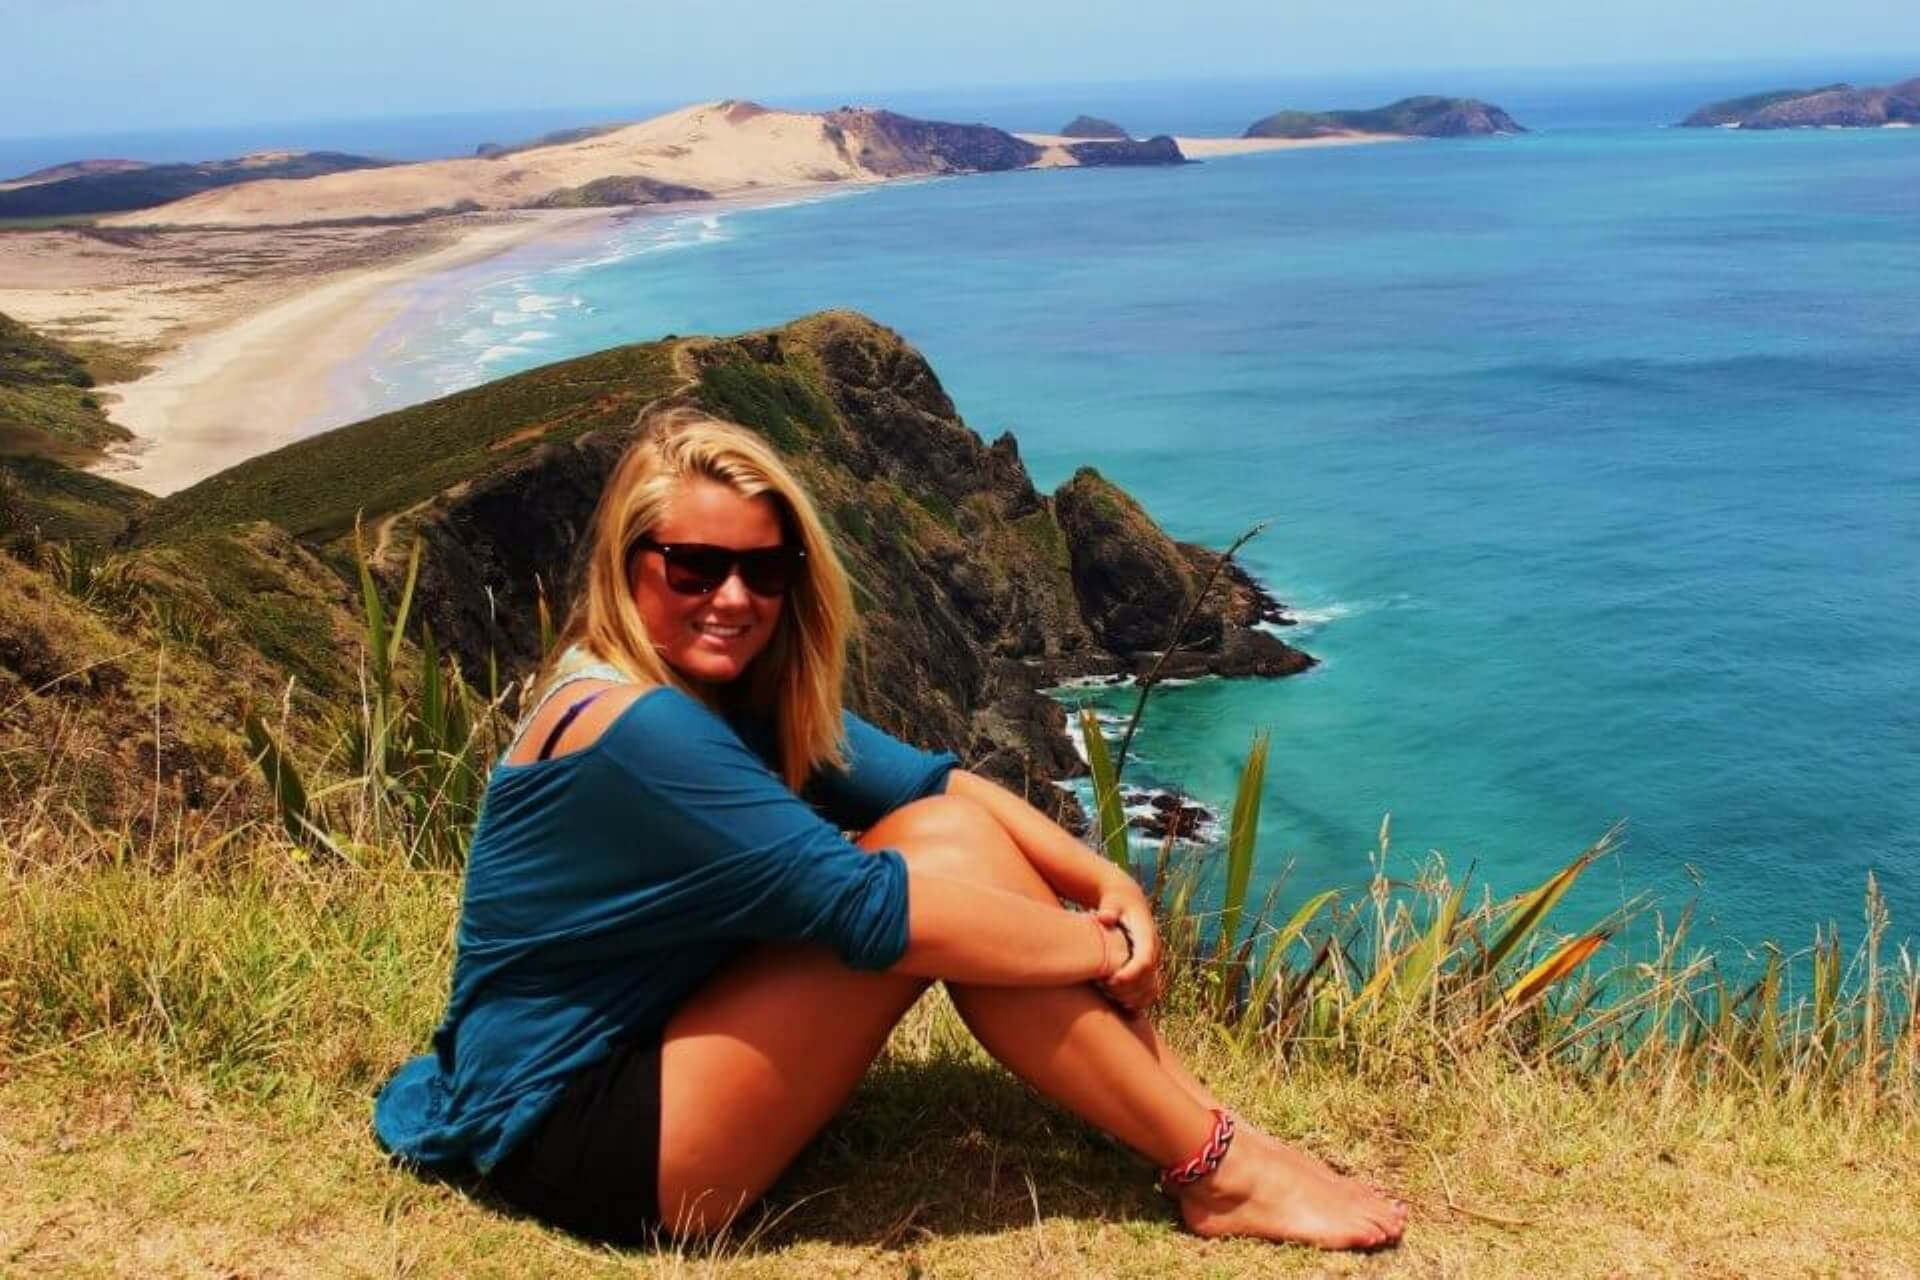 australia Exchange student on a beach in New Zealand